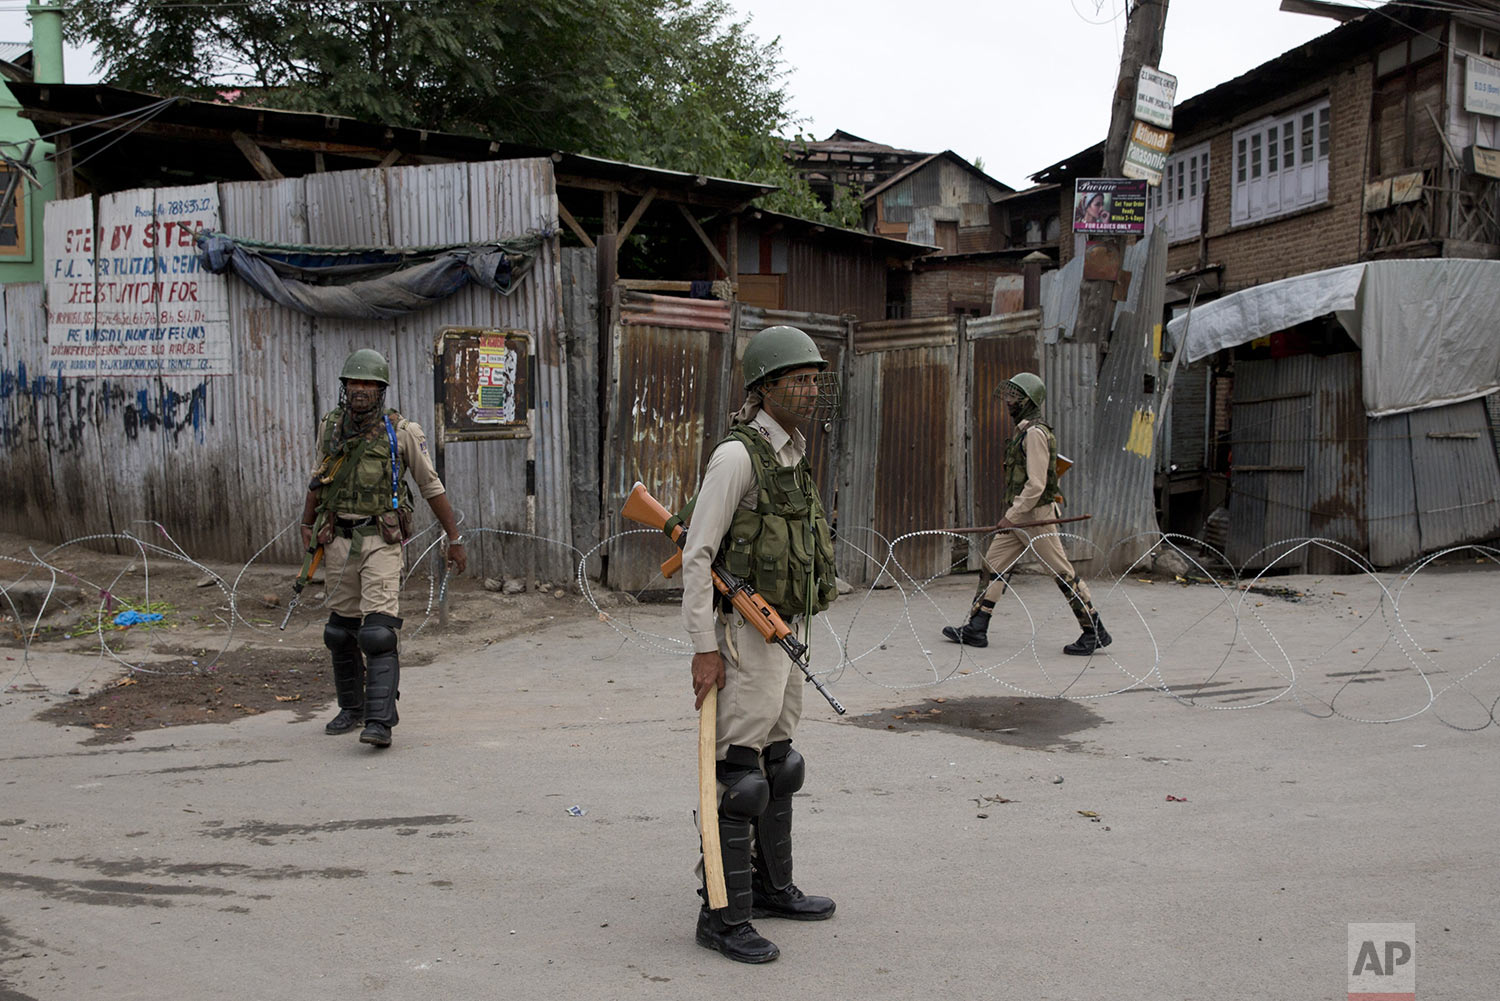 Indian paramilitary soldiers stand guard during security lockdown in Srinagar, Indian controlled Kashmir, Sunday, Aug. 18, 2019. (AP Photo/ Dar Yasin)